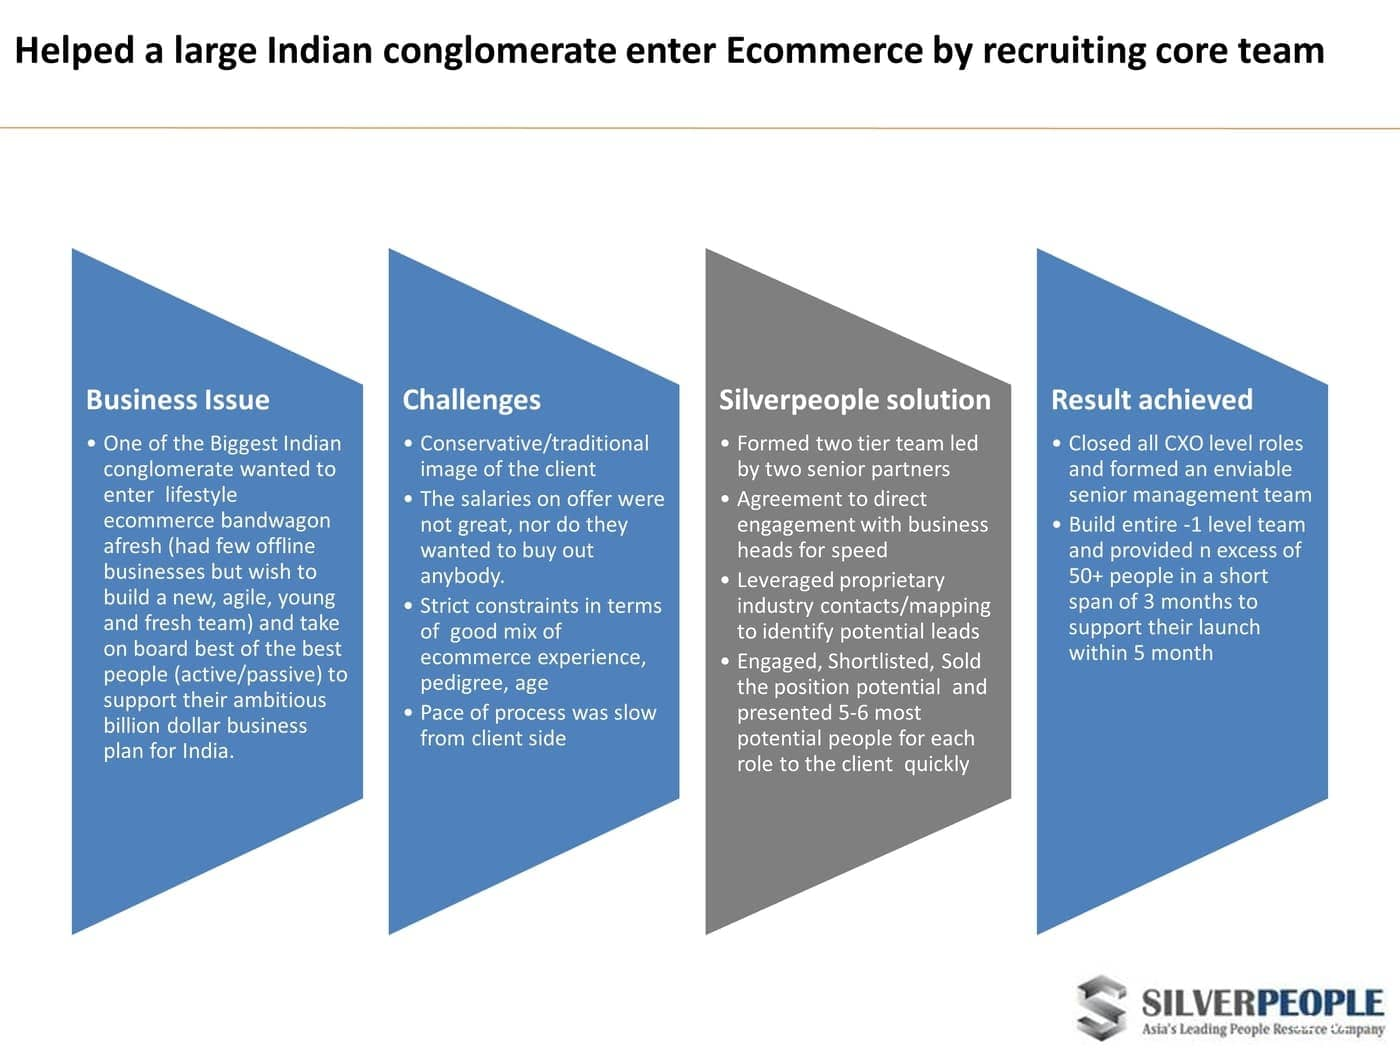 Helped a large Indian conglomerate enter Ecommerce by recruiting core team